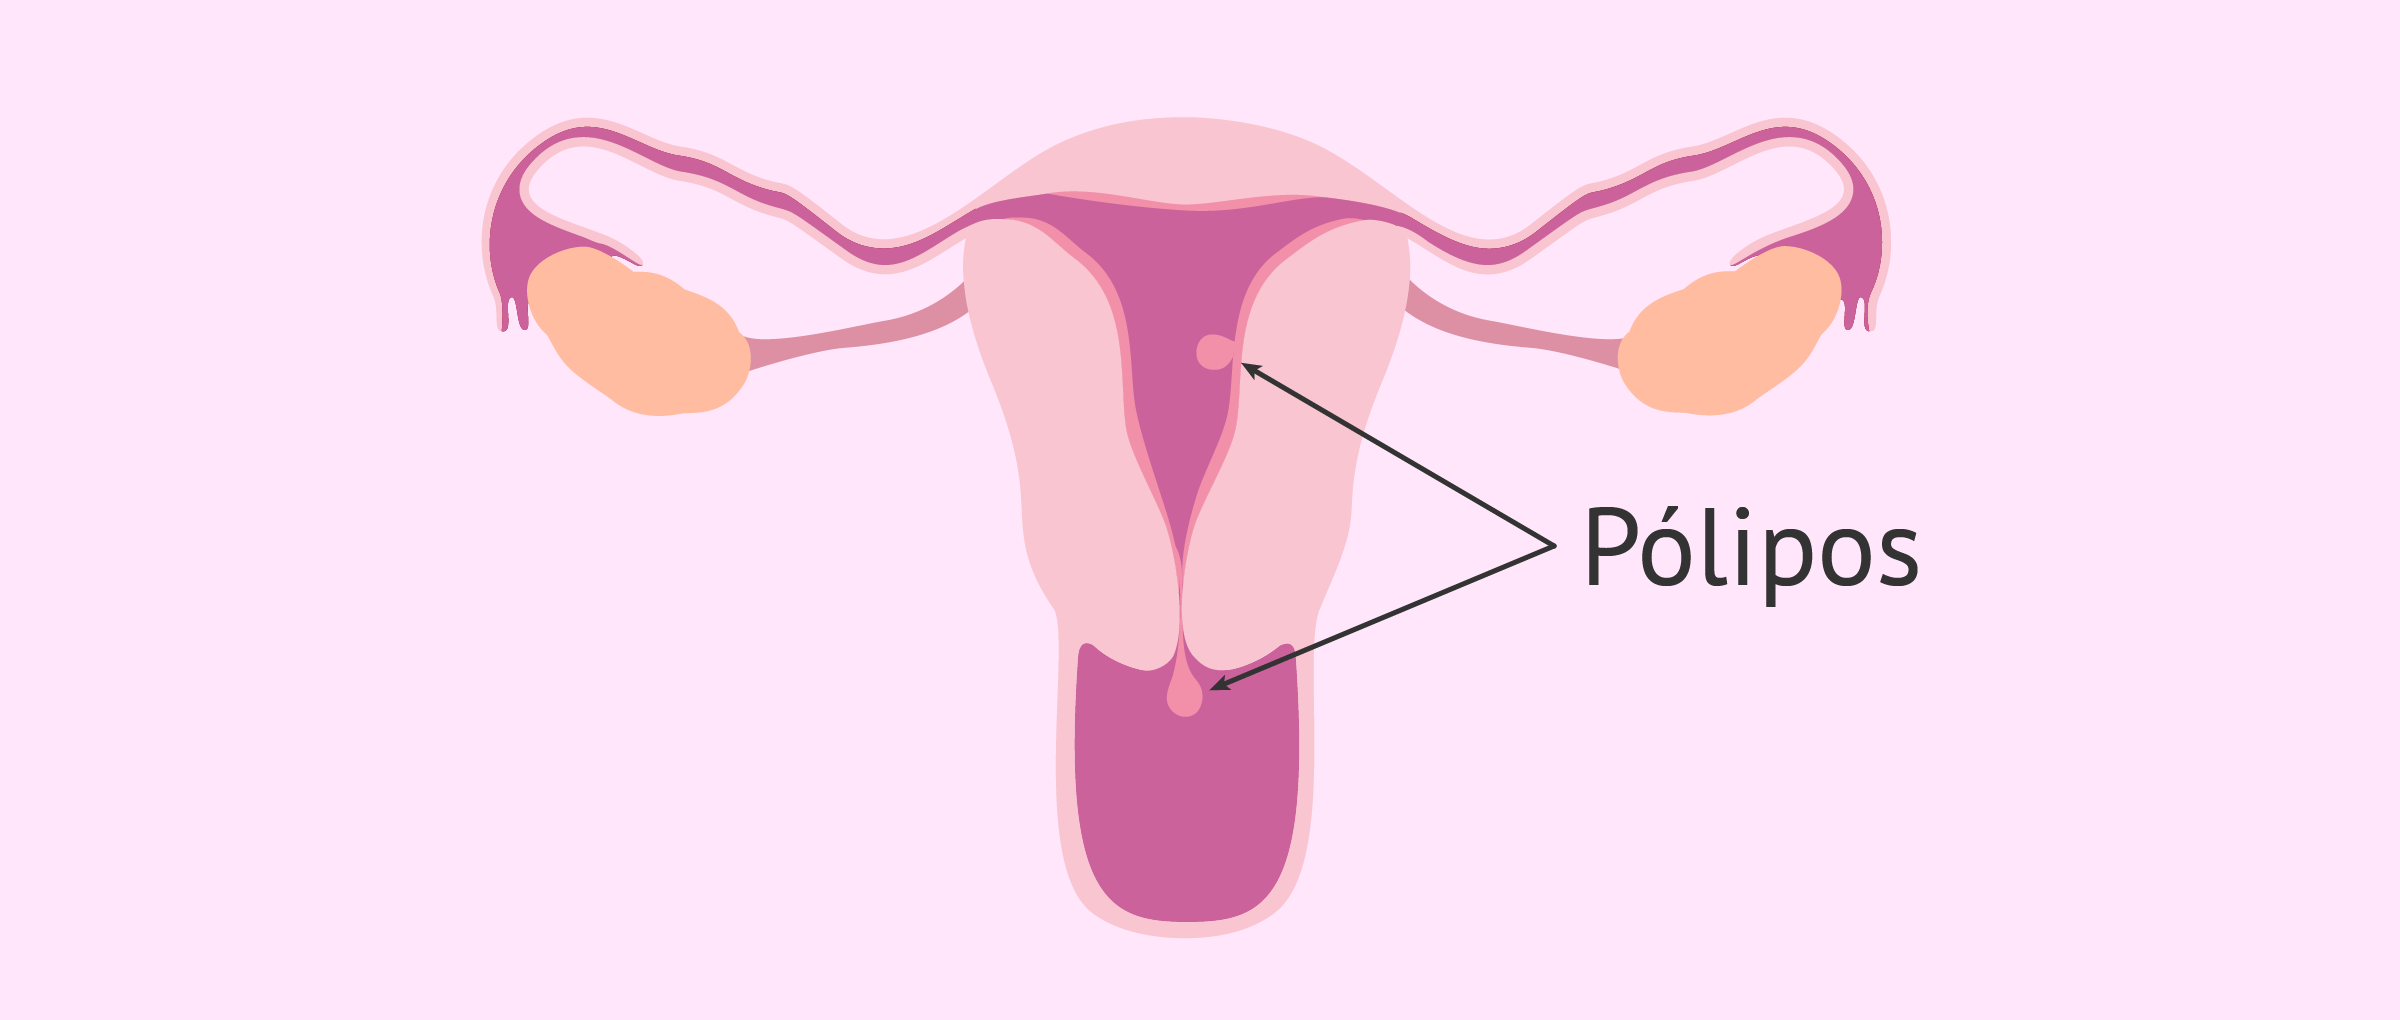 cancer endometrial mujer joven